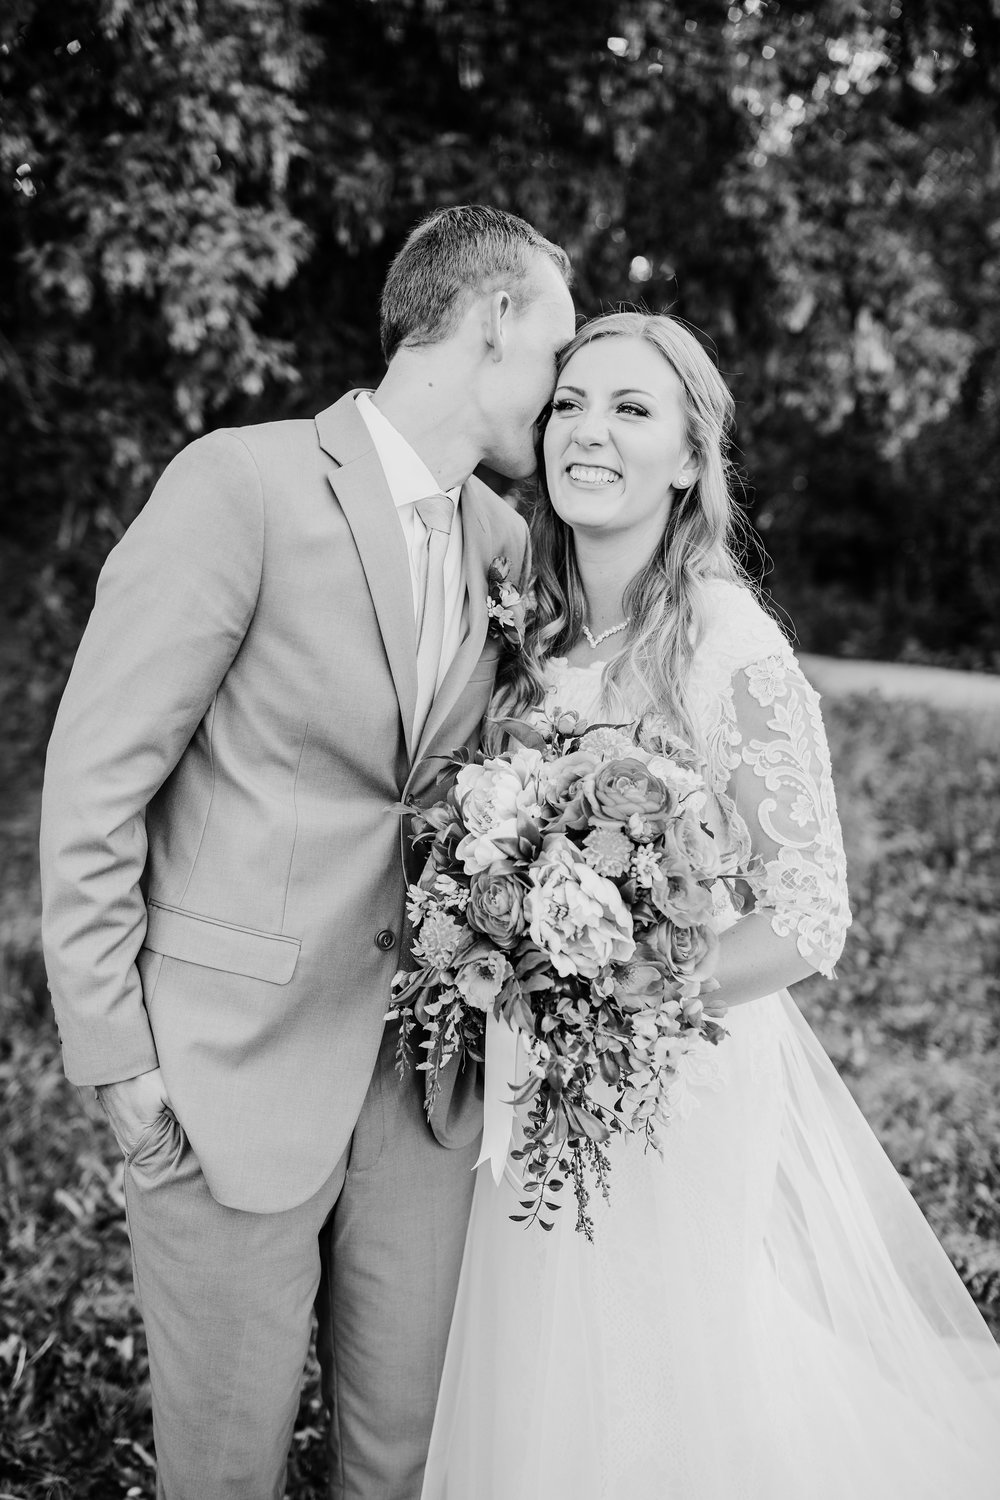 logan utah wedding photographer wildflower bouquet lace wedding dress bride and groom